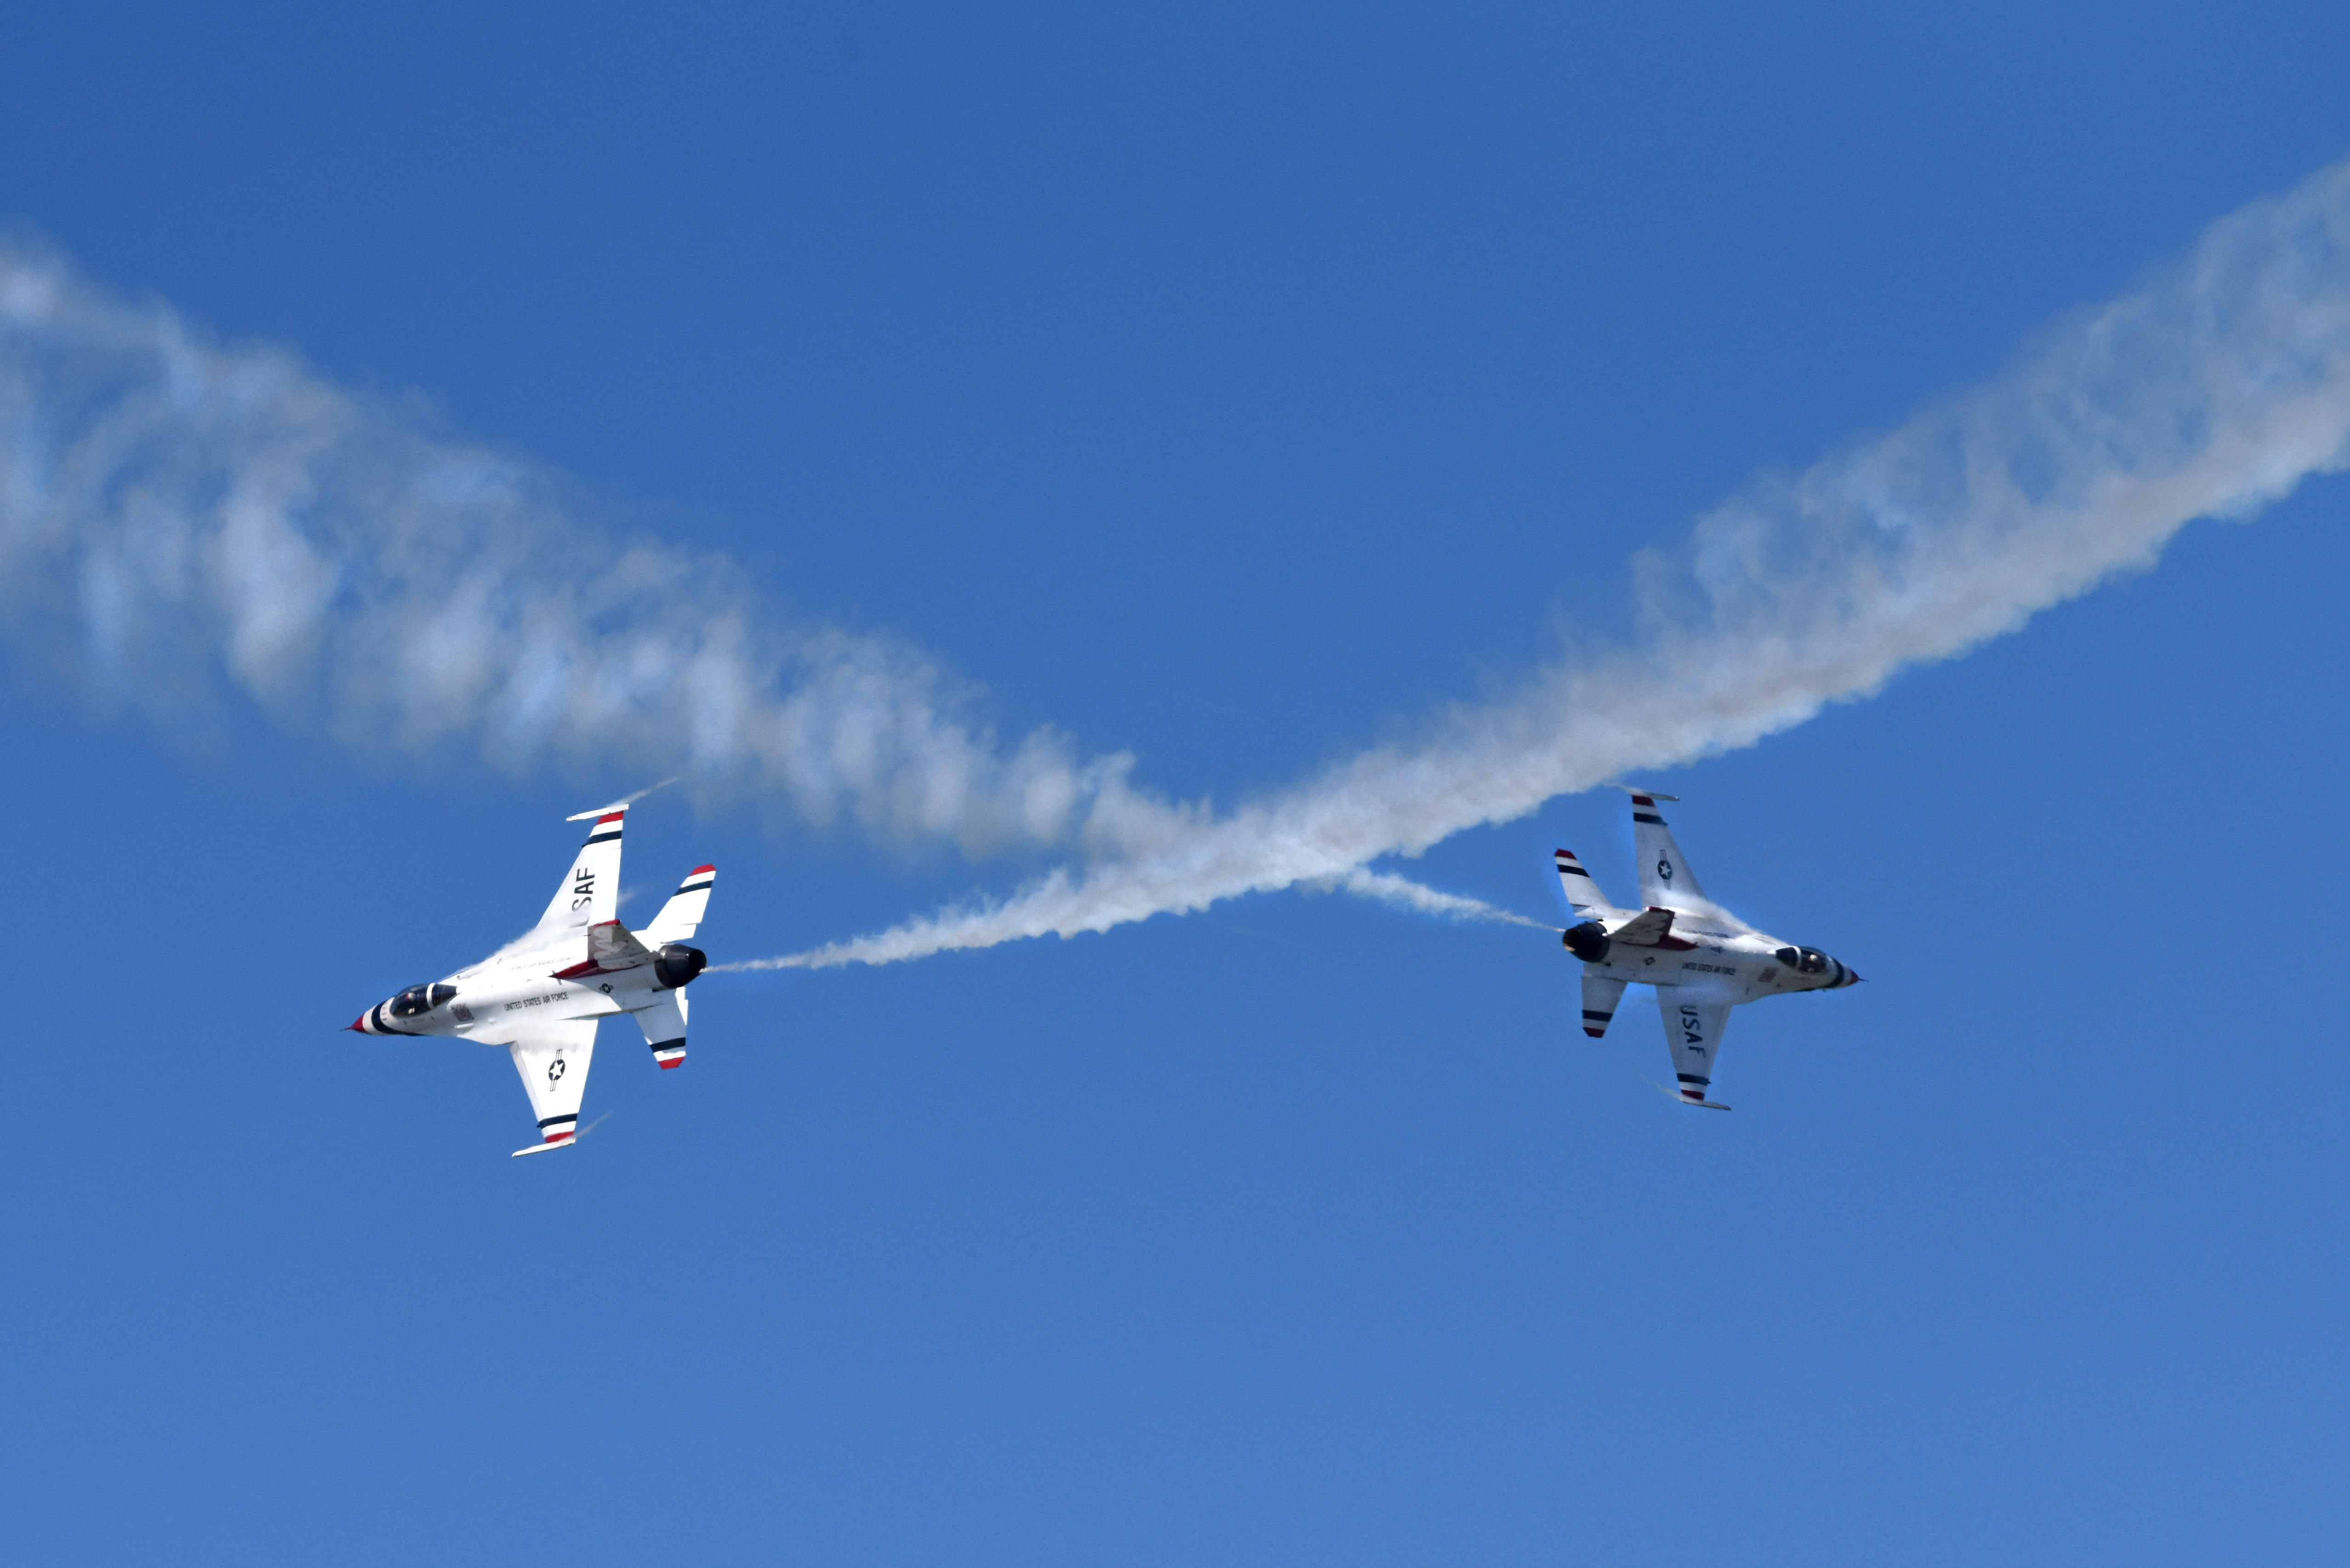 The U.S. Air Force Thunderbirds Demonstration Team performs during the Arctic Thunder Open House at Joint Base Elmendorf-Richardson, Alaska, July 1, 2018. This biennial event hosted by JBER is one of the largest in the state and one of the premier aerial demonstrations in the world. The event features multiple performers and ground acts to include the JBER Joint Forces, U.S. Air Force F-22 and U.S. Air Force Thunderbirds demonstrations teams, June 30-July 1. (U.S. Air Force photo by Jamal Wilson)